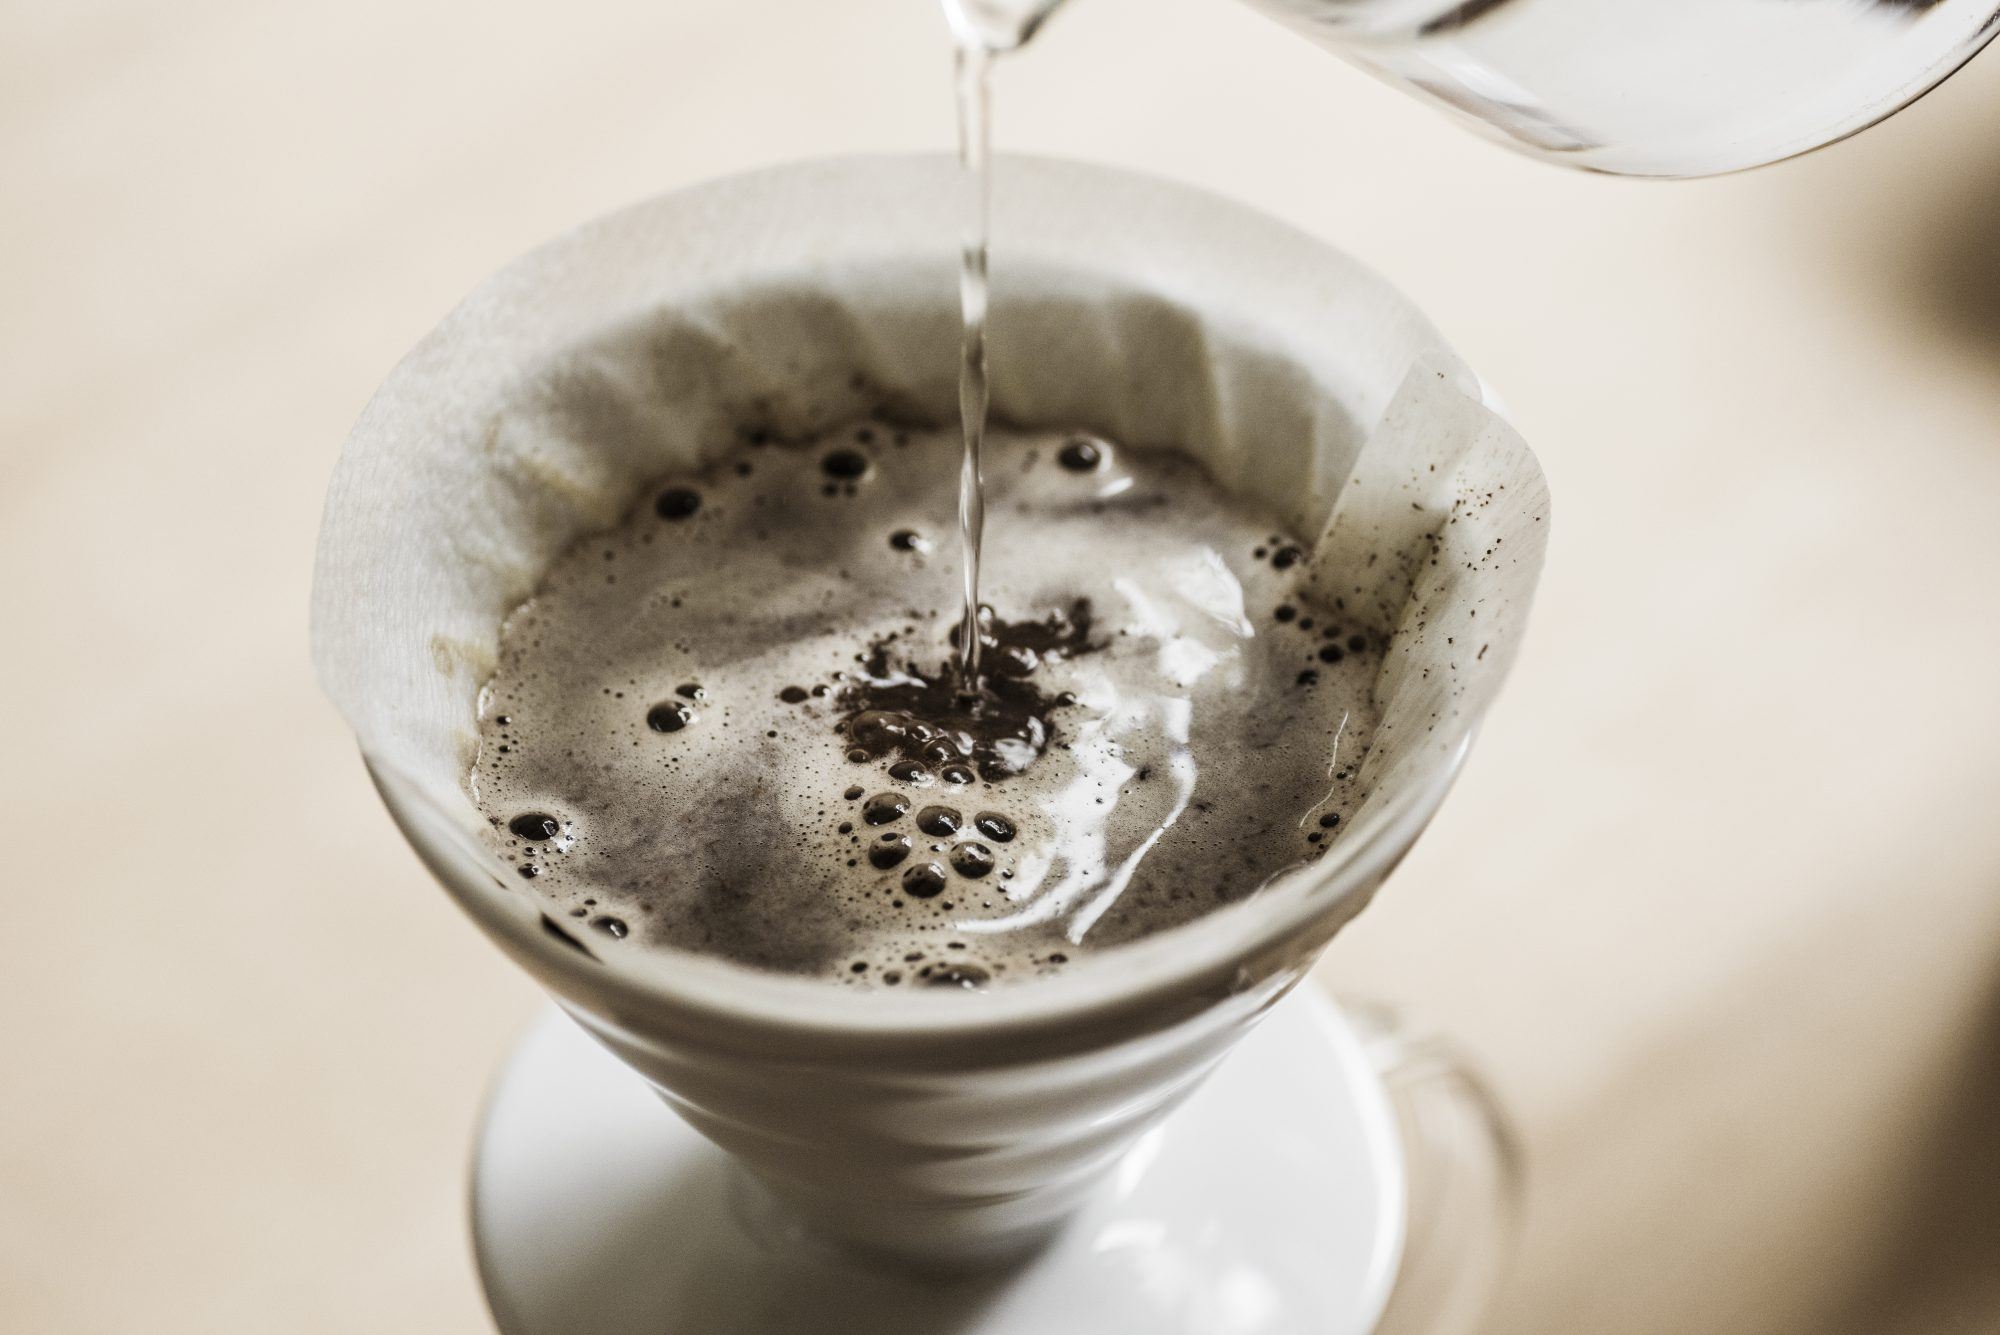 13 Amazing Uses for Used Coffee Grounds